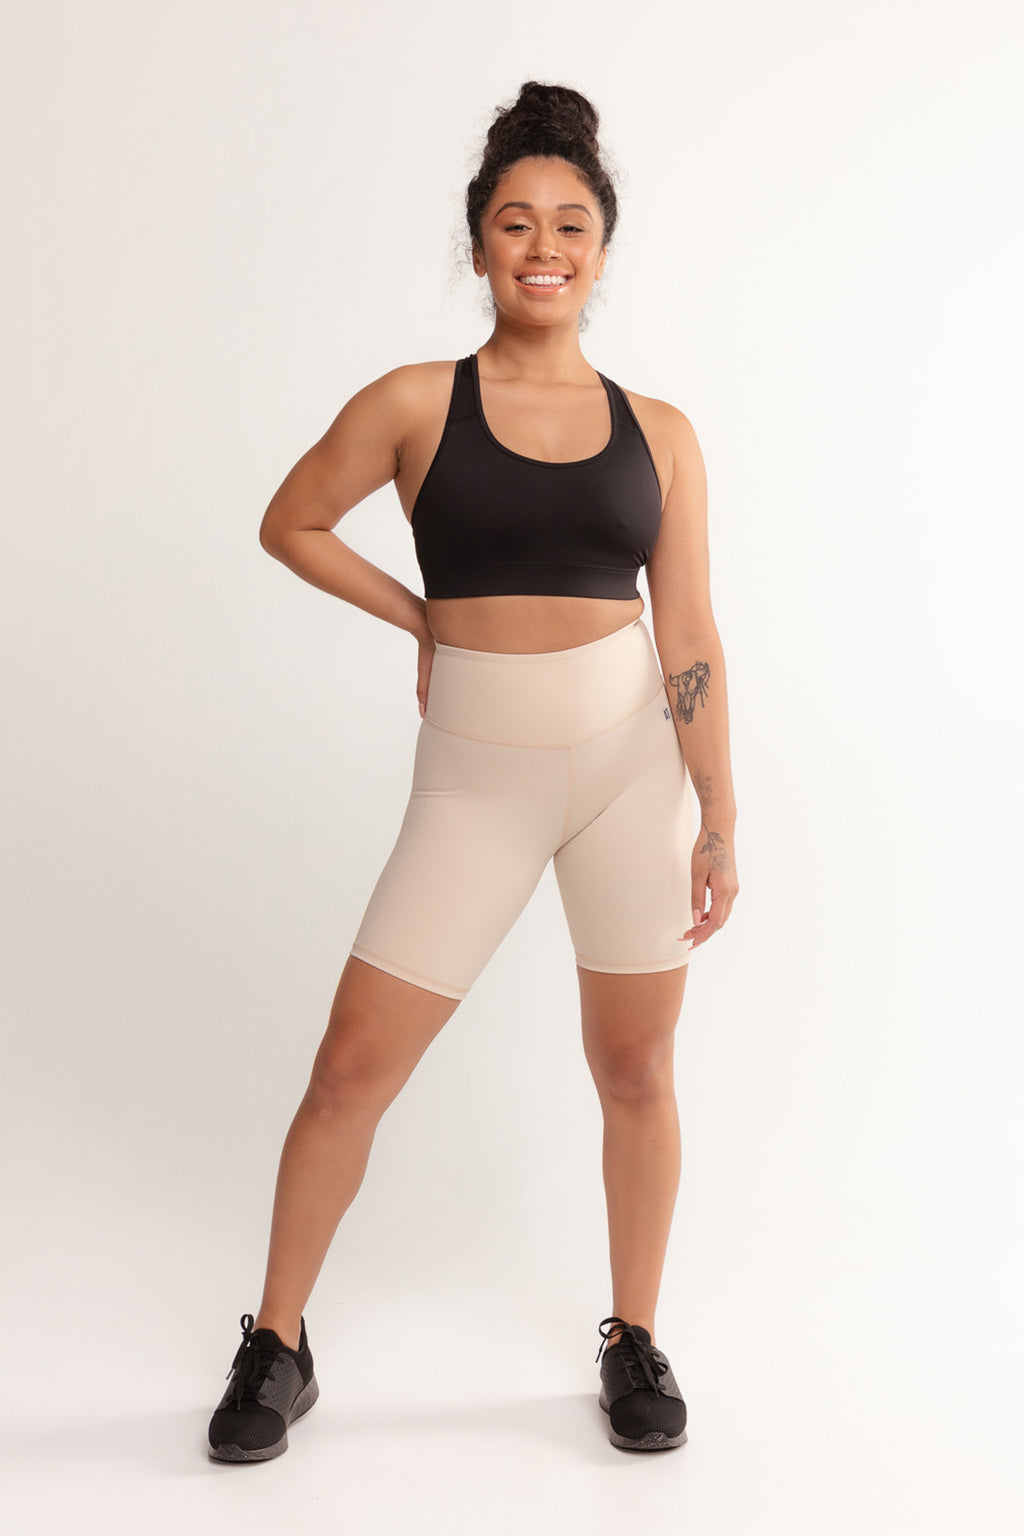 mid-thigh-under-uniform-compression-short-tight-beige-small-front